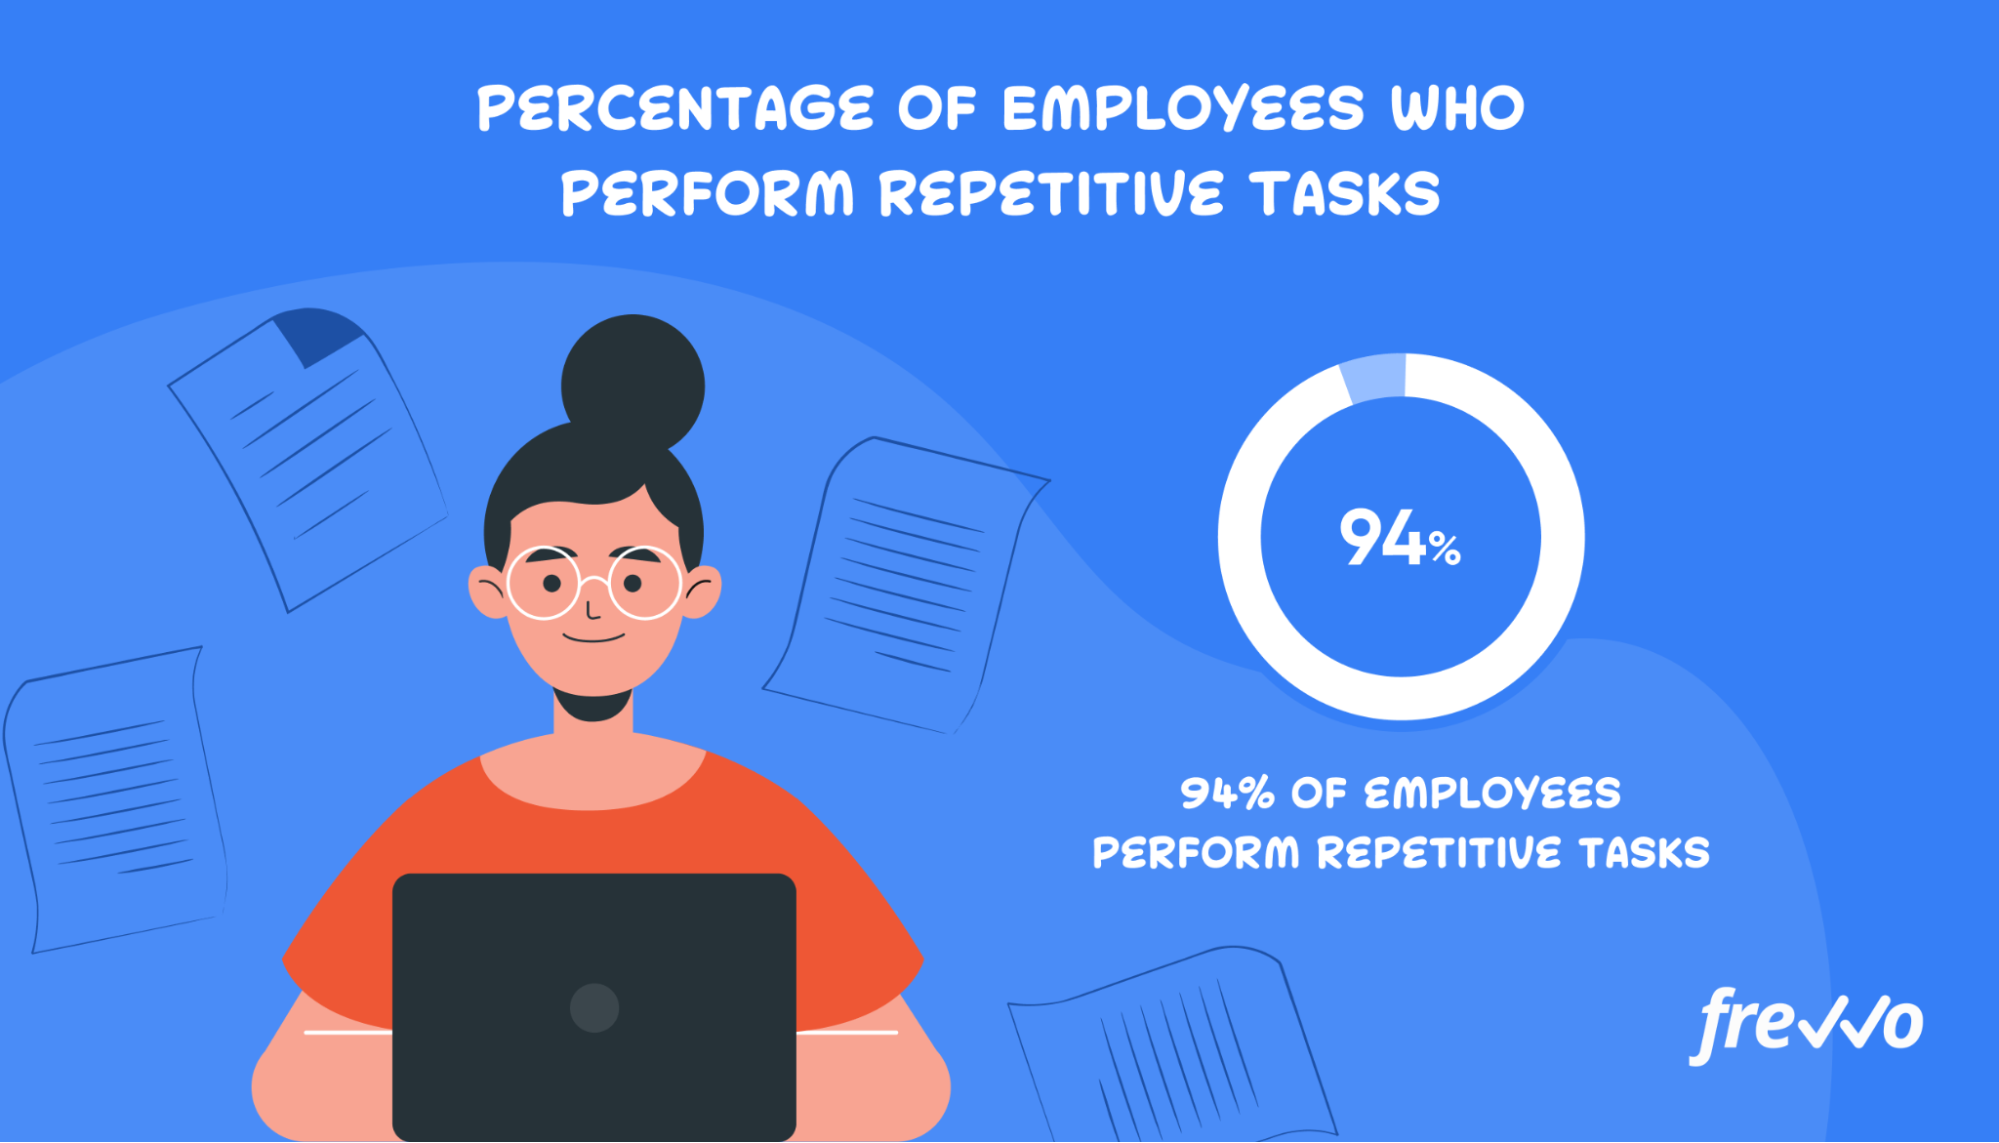 94% of employees say they perform repetitive tasks